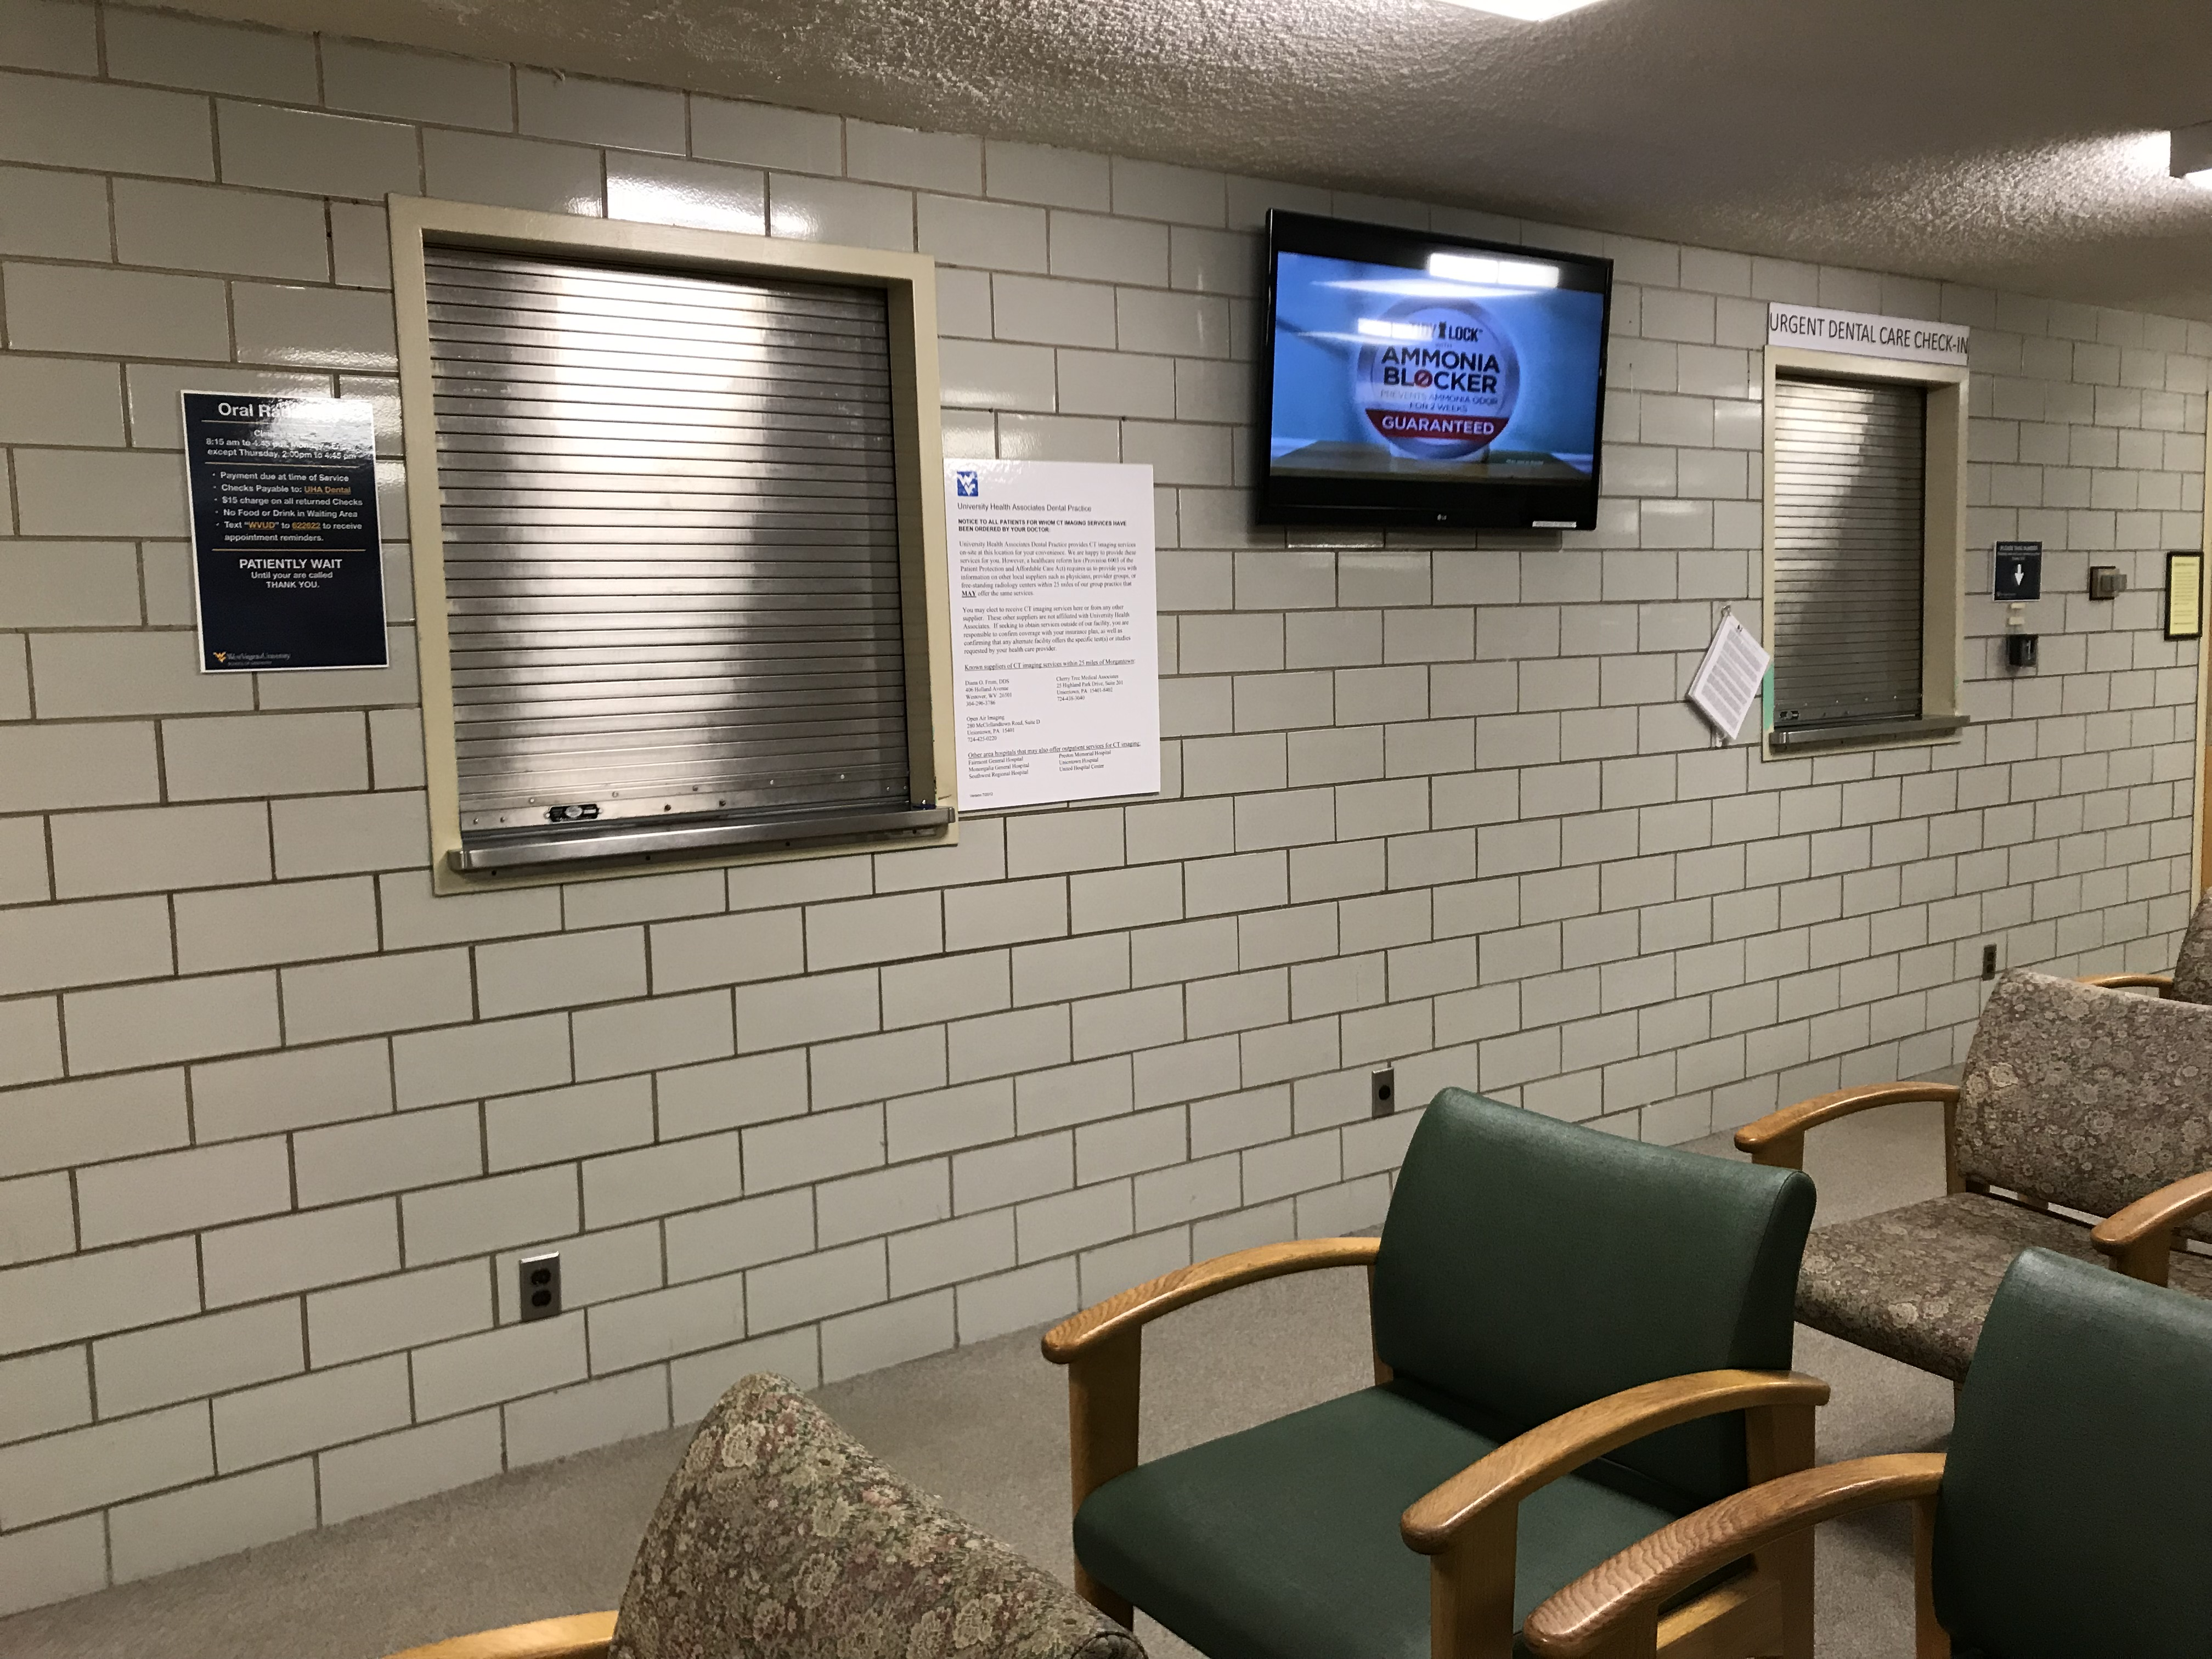 Urgent Care Clinic renovations are part of a larger plan for updates.